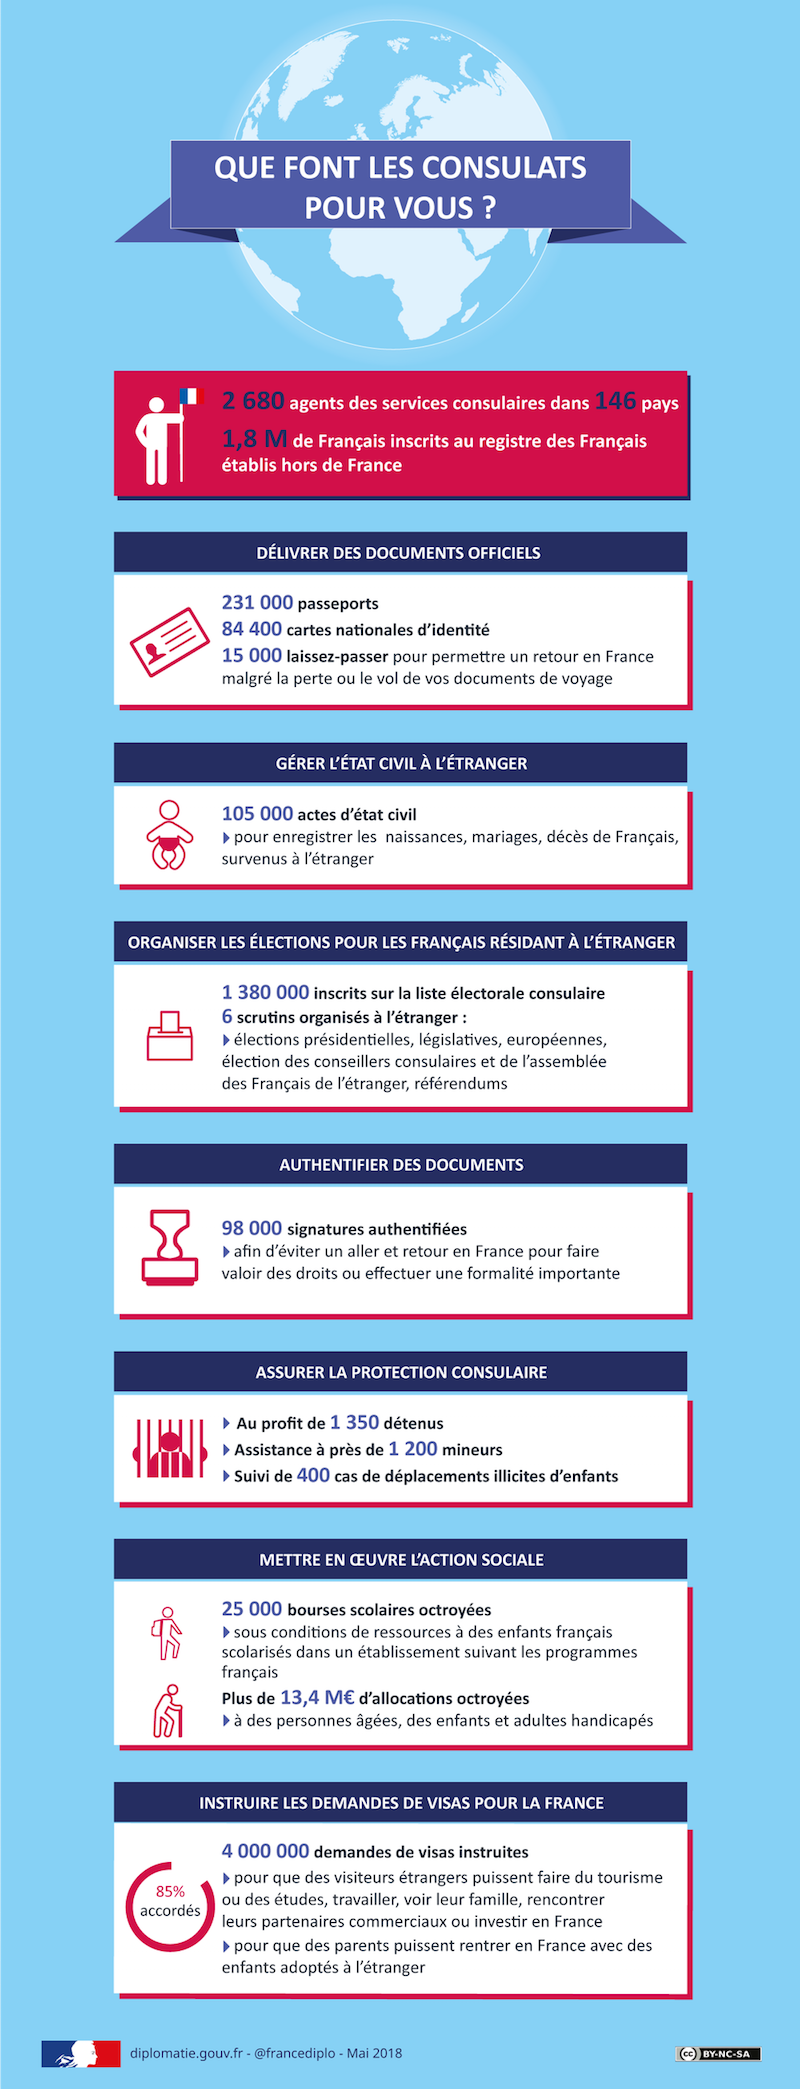 Infographie role Consulat